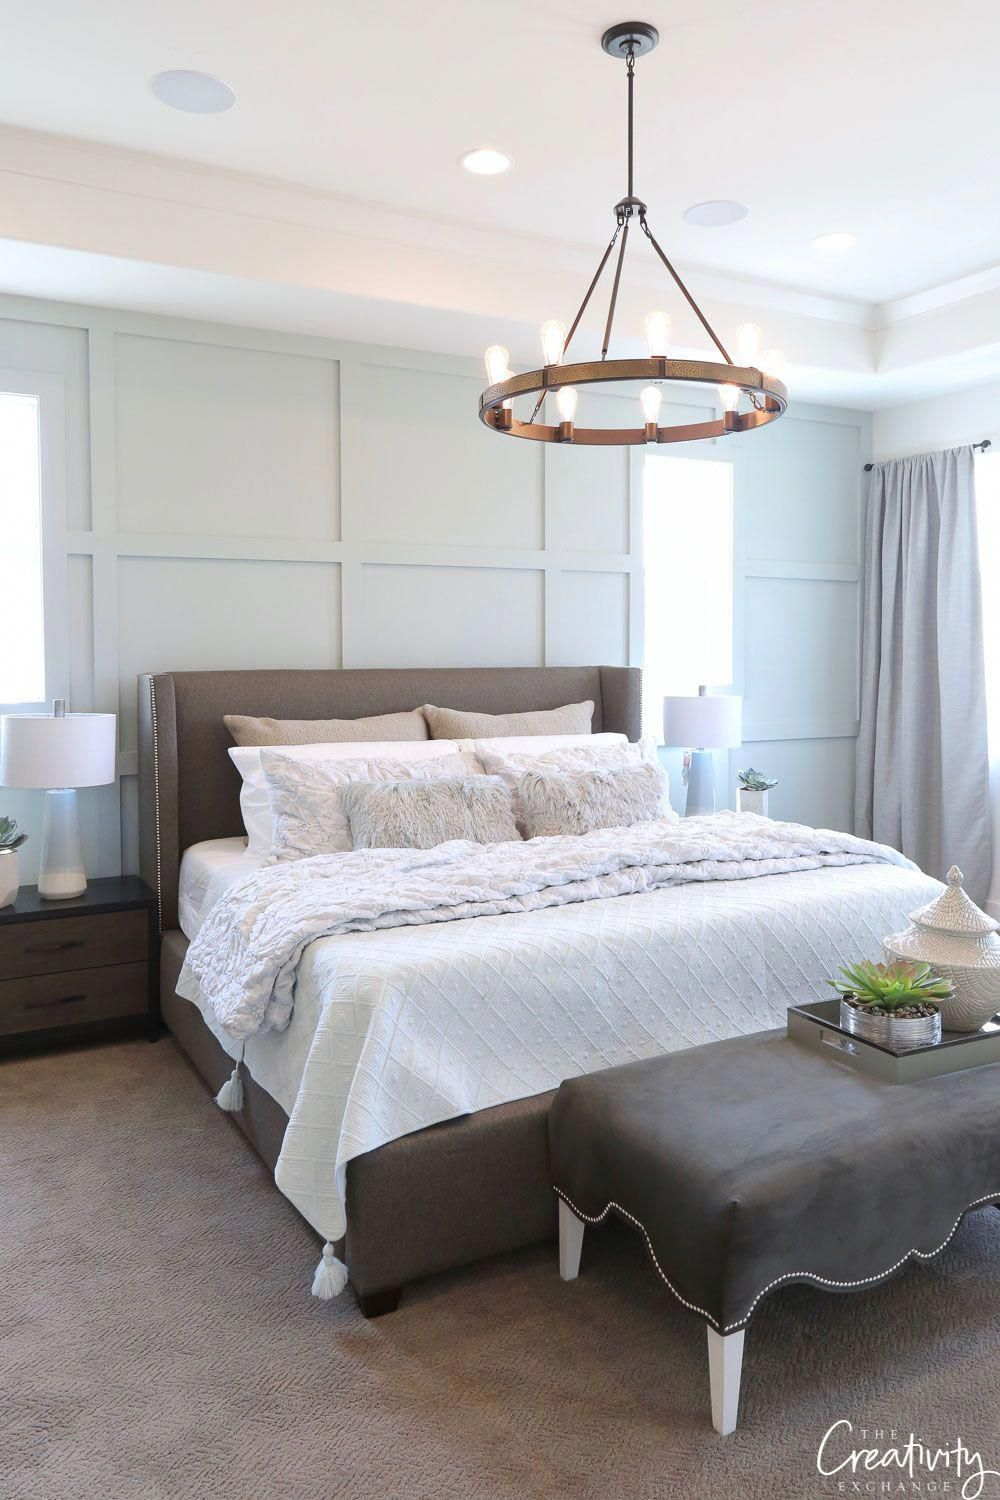 Sherwin Williams Oyster Bay. Master bedroom with trim grid